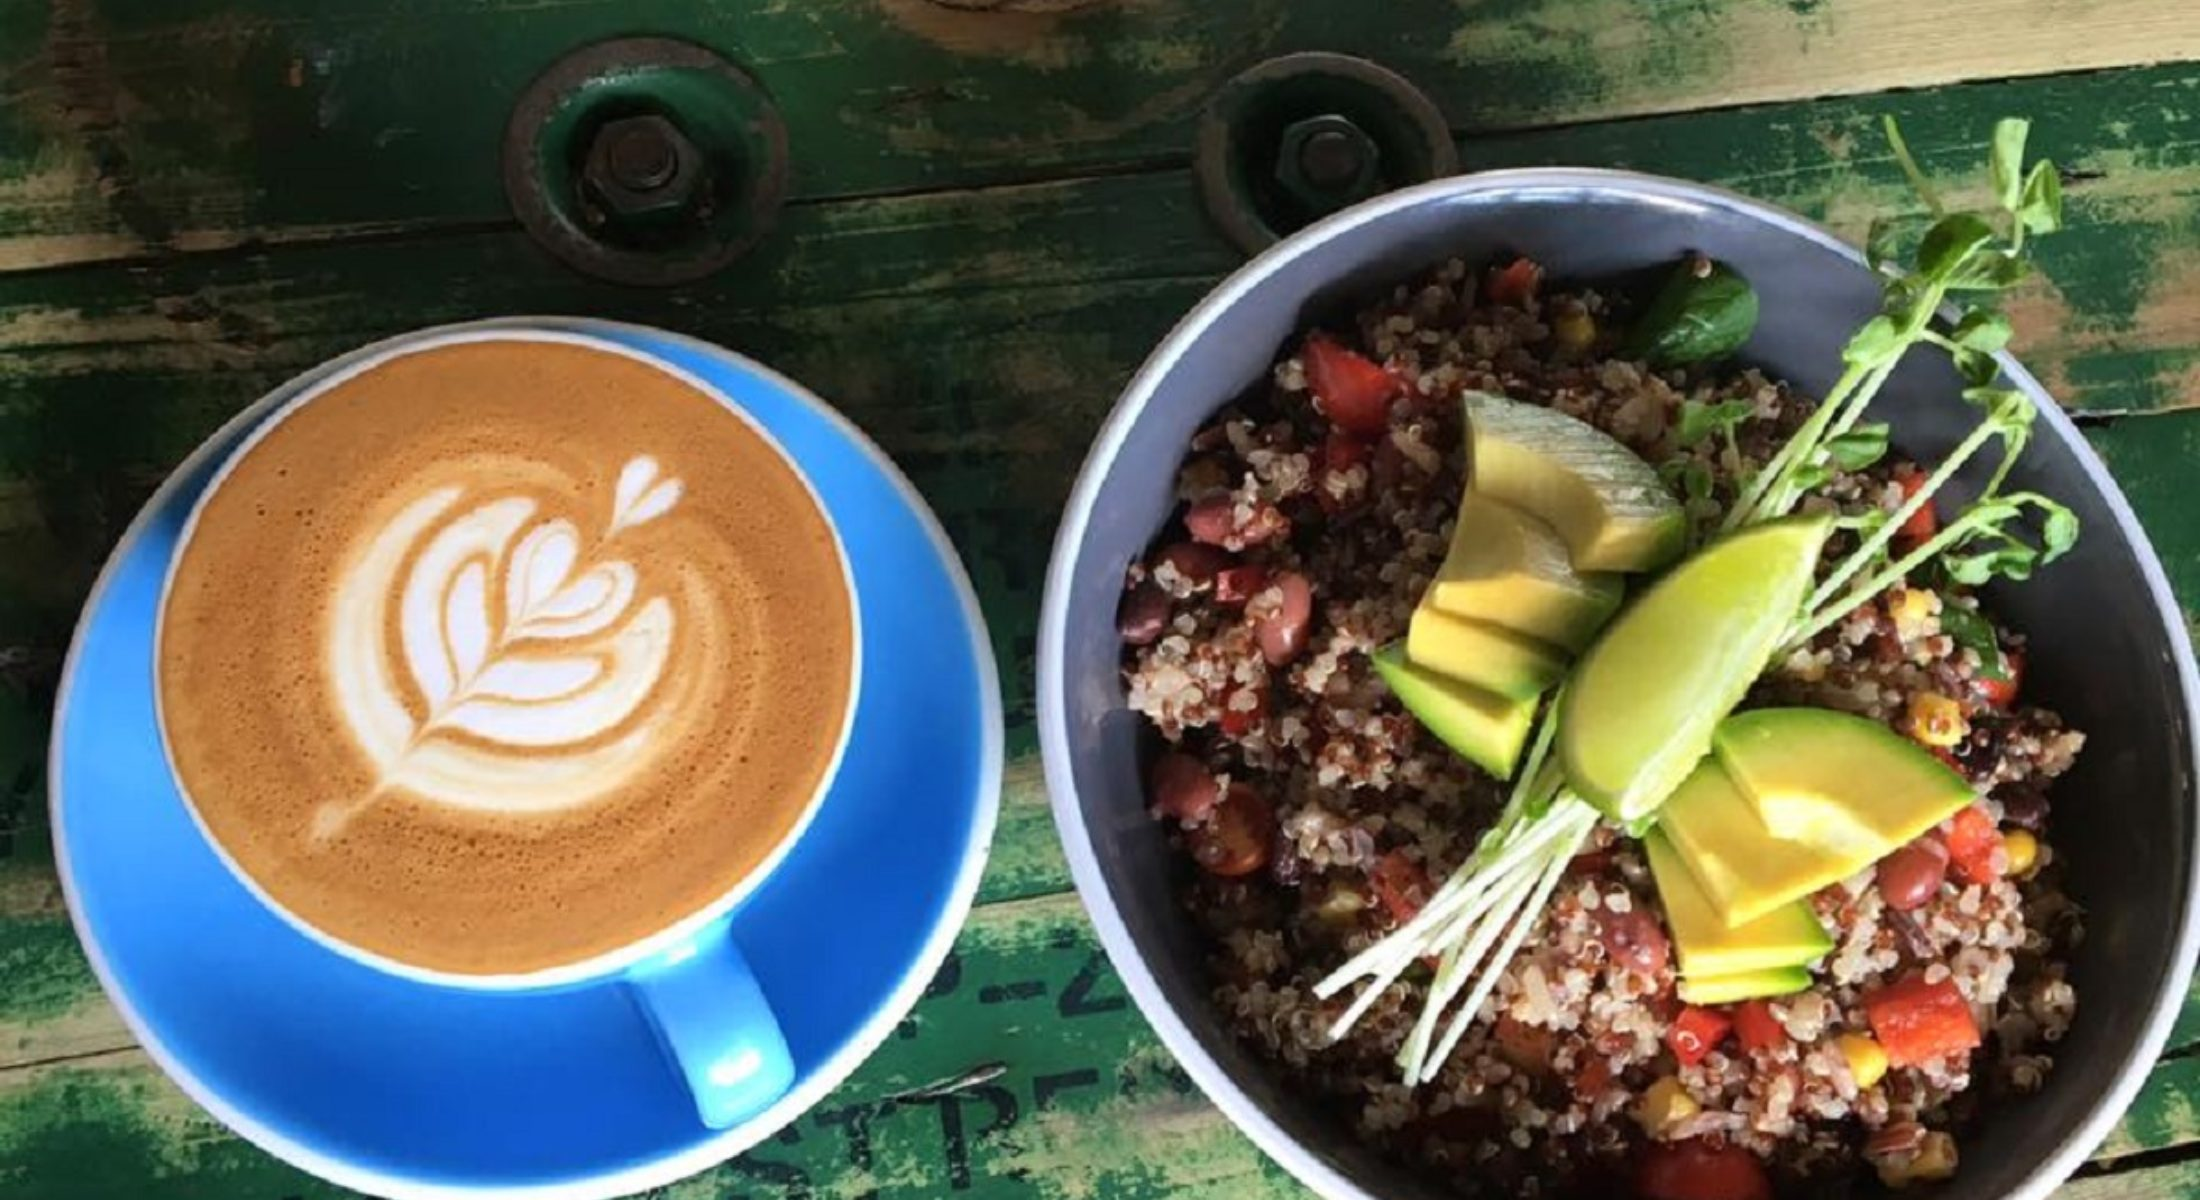 Evolve Espresso Bar Bongaree Moreton Bay Region Store Coffee And Lunch